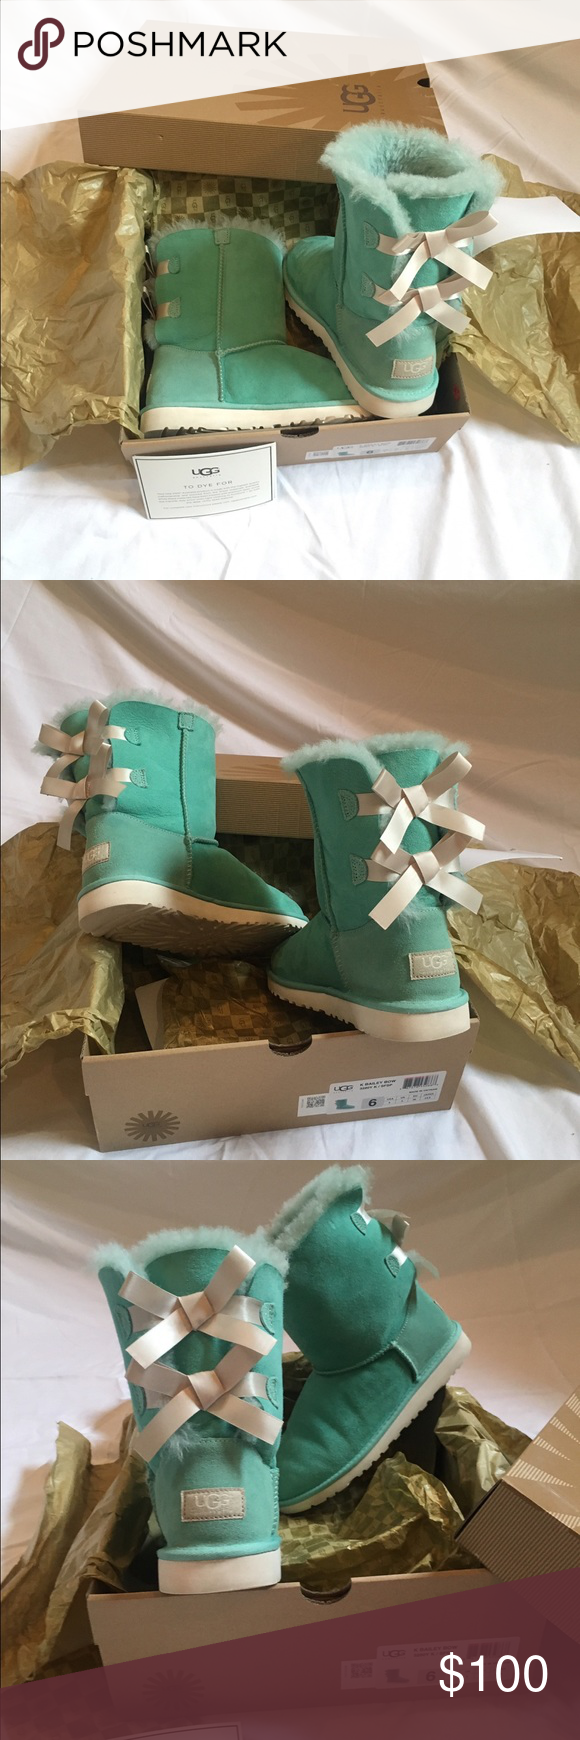 57f7df8a166 Tiffany blue colored Bailey bow UGGS Only worn 3 times!! Super loved ...